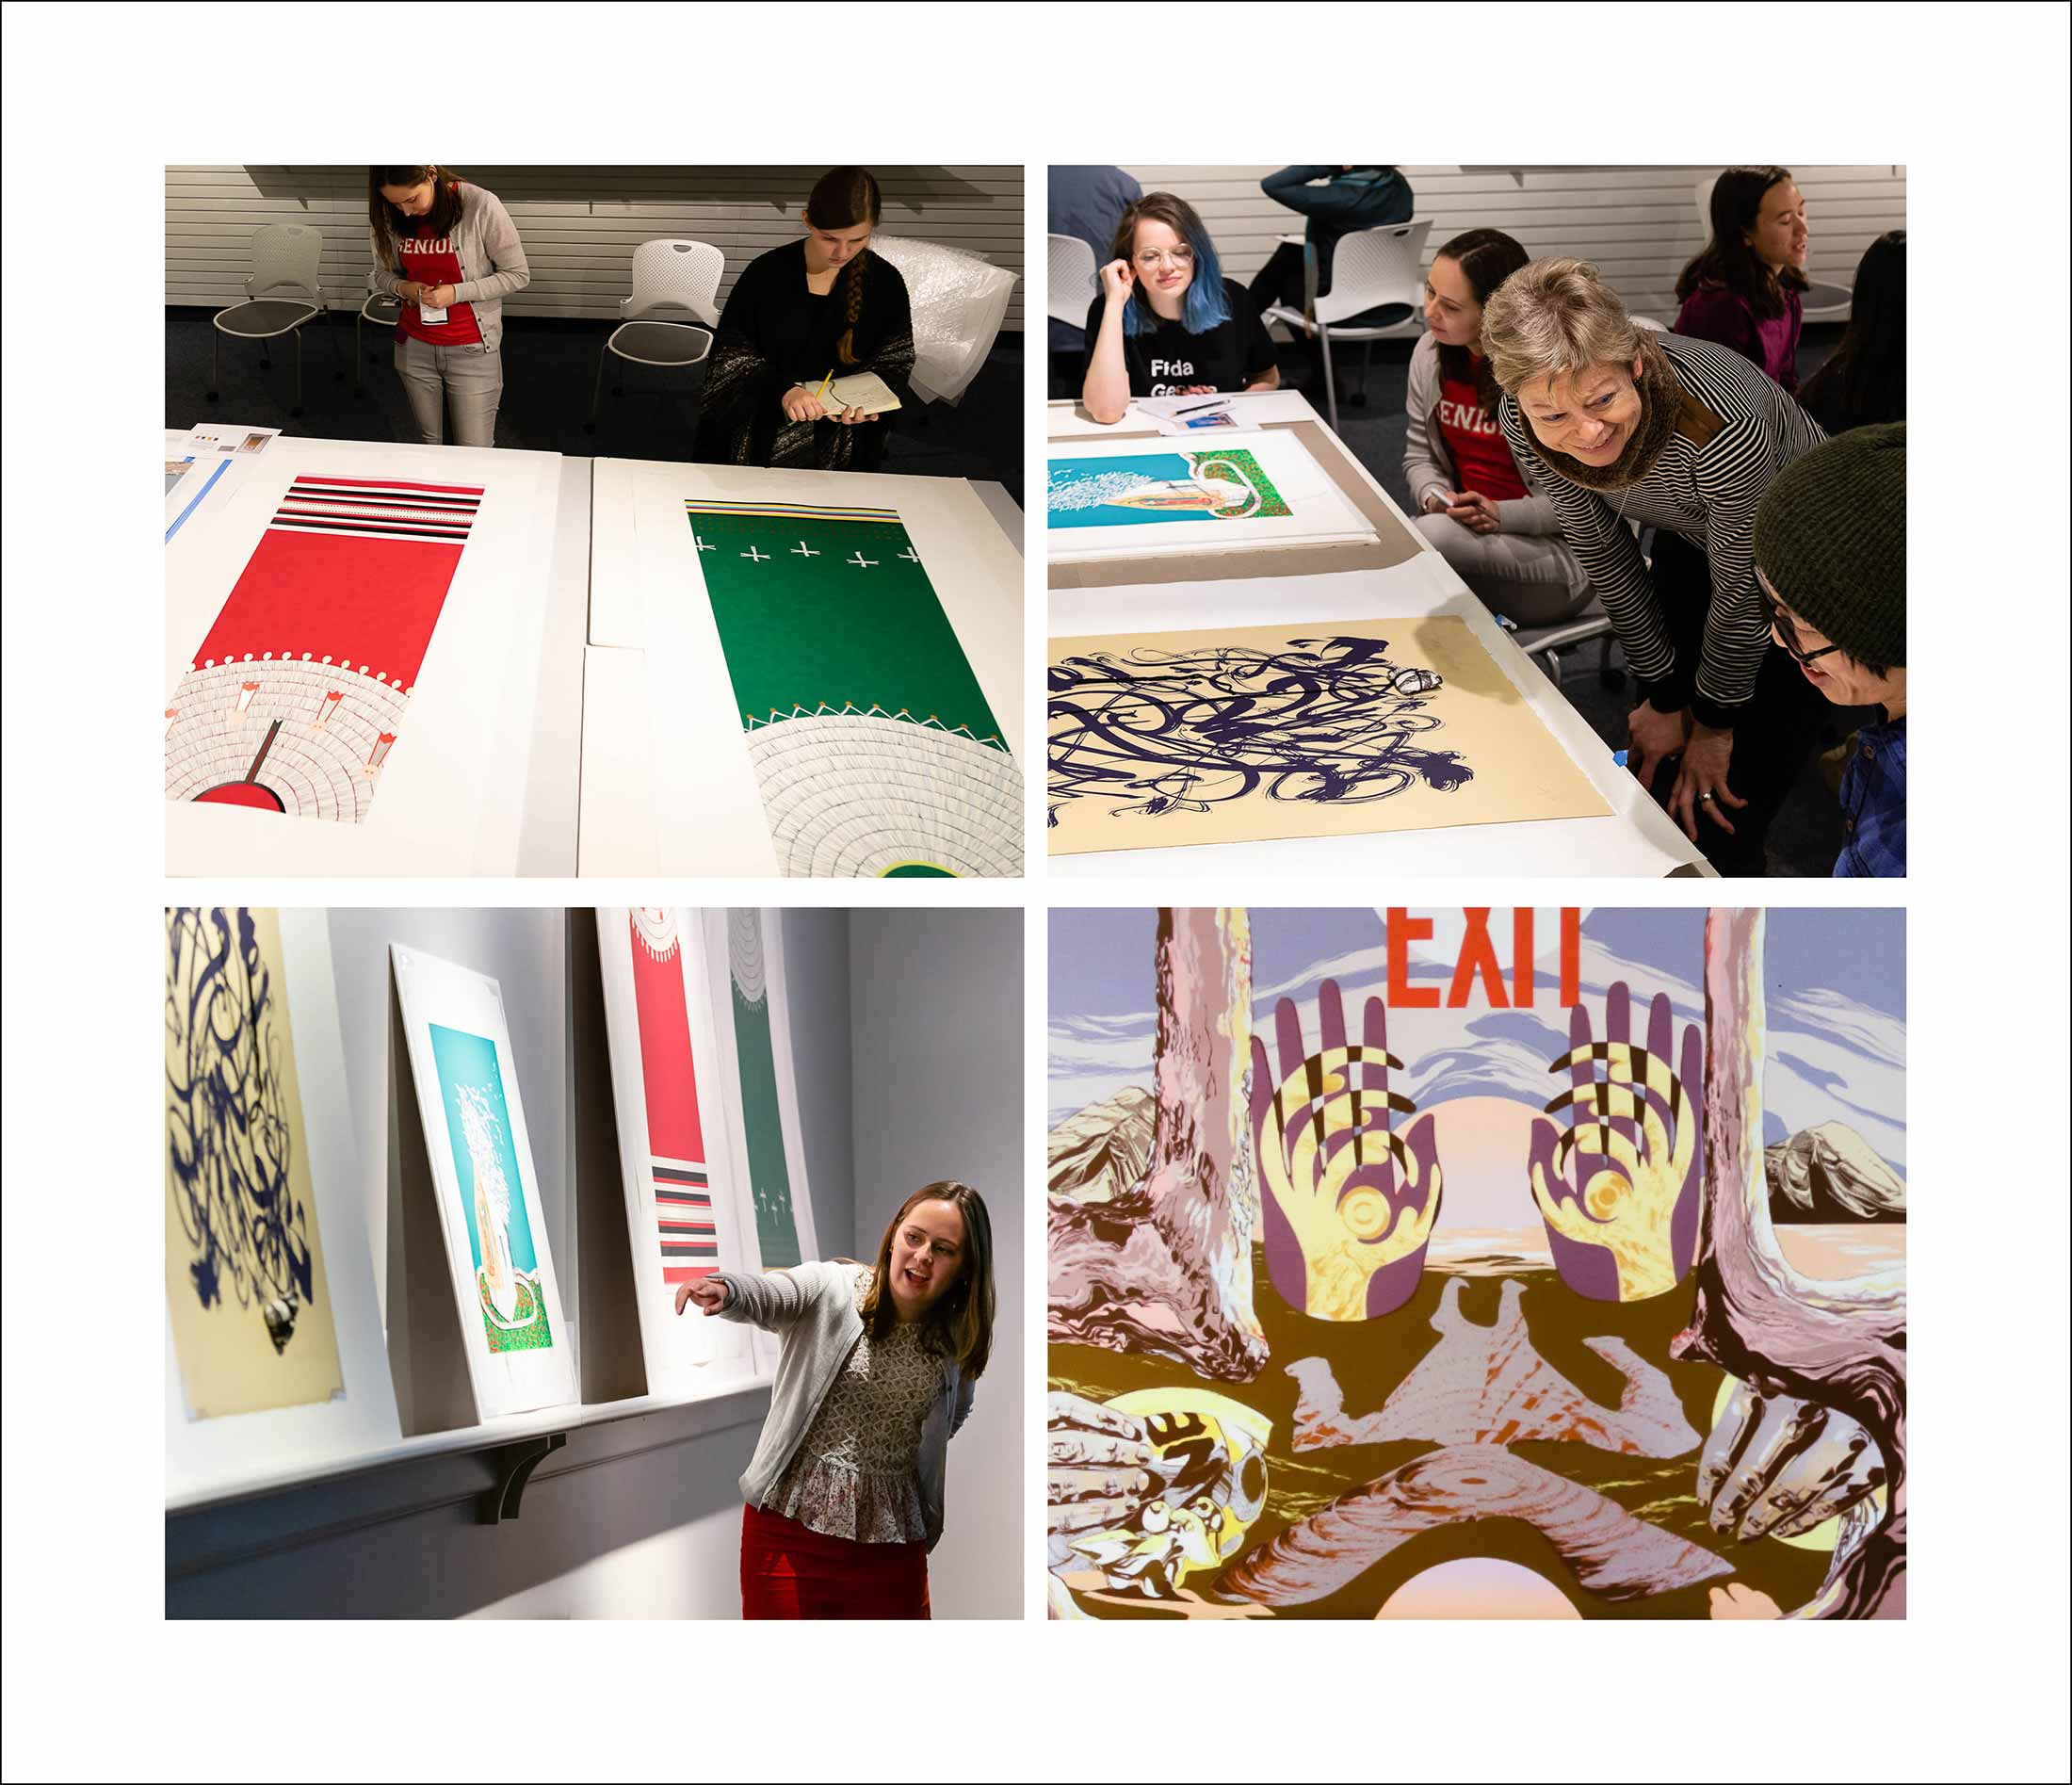 Four photos of people observing and discussing prints spread out on tables and propped against walls